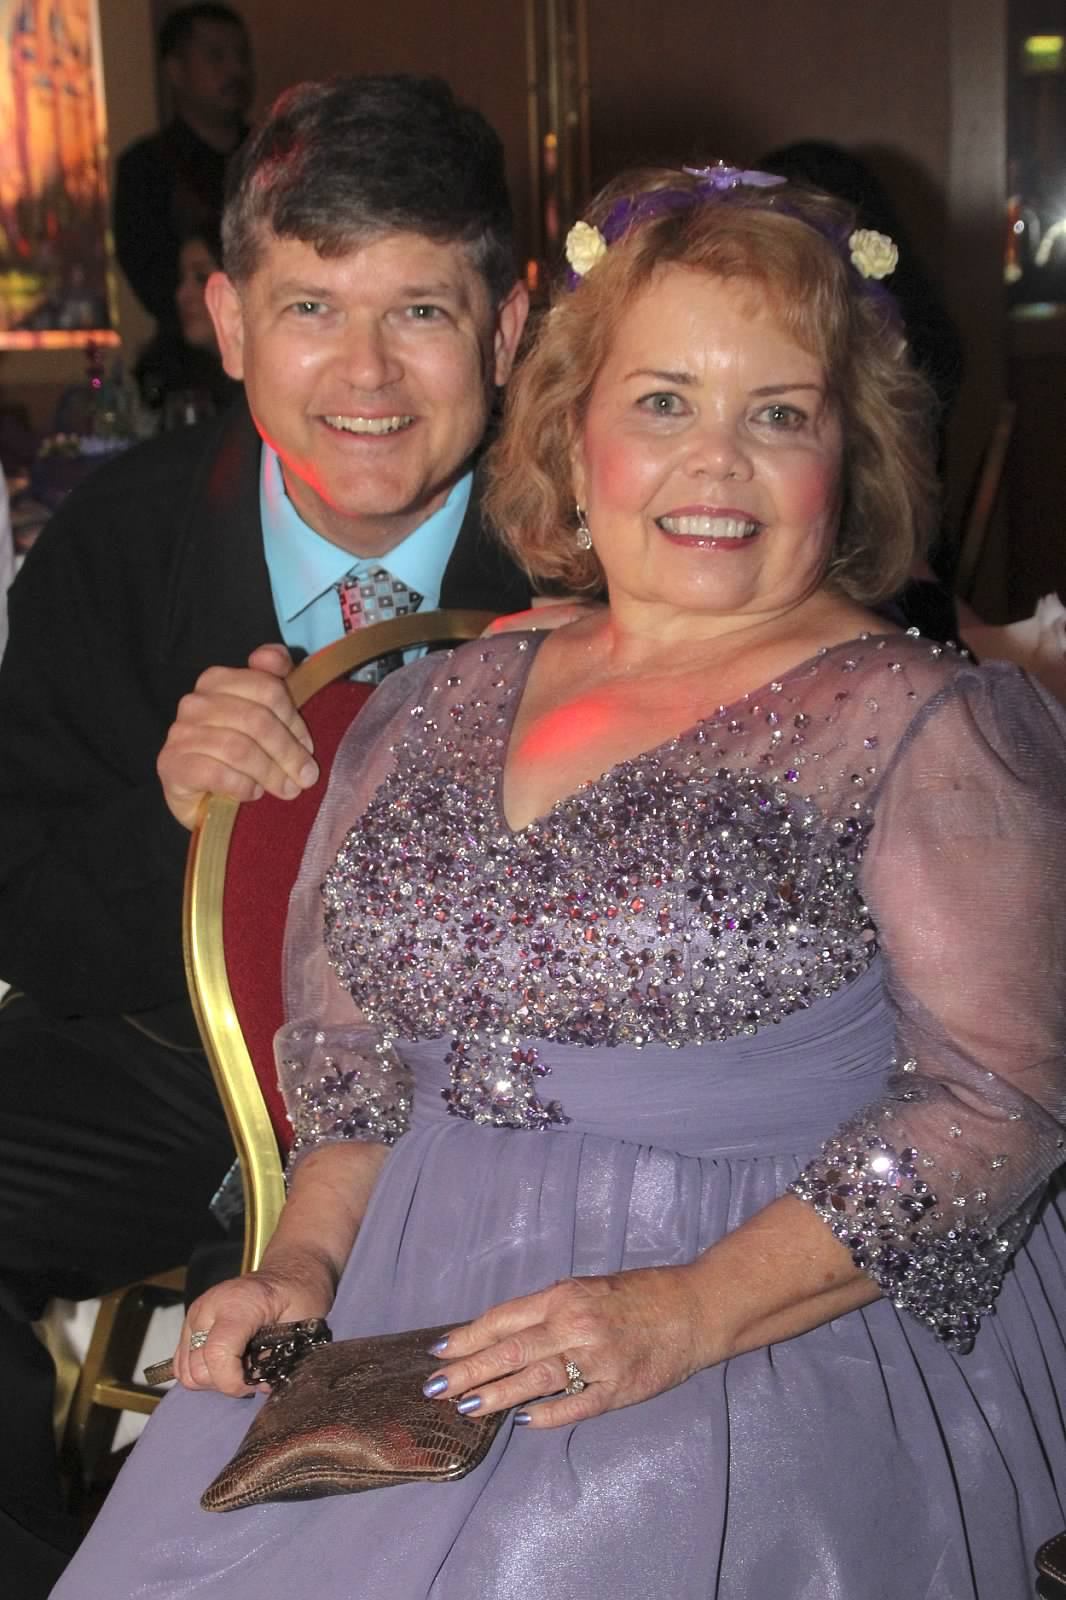 Lori and Dean hartwell - renal teen prom